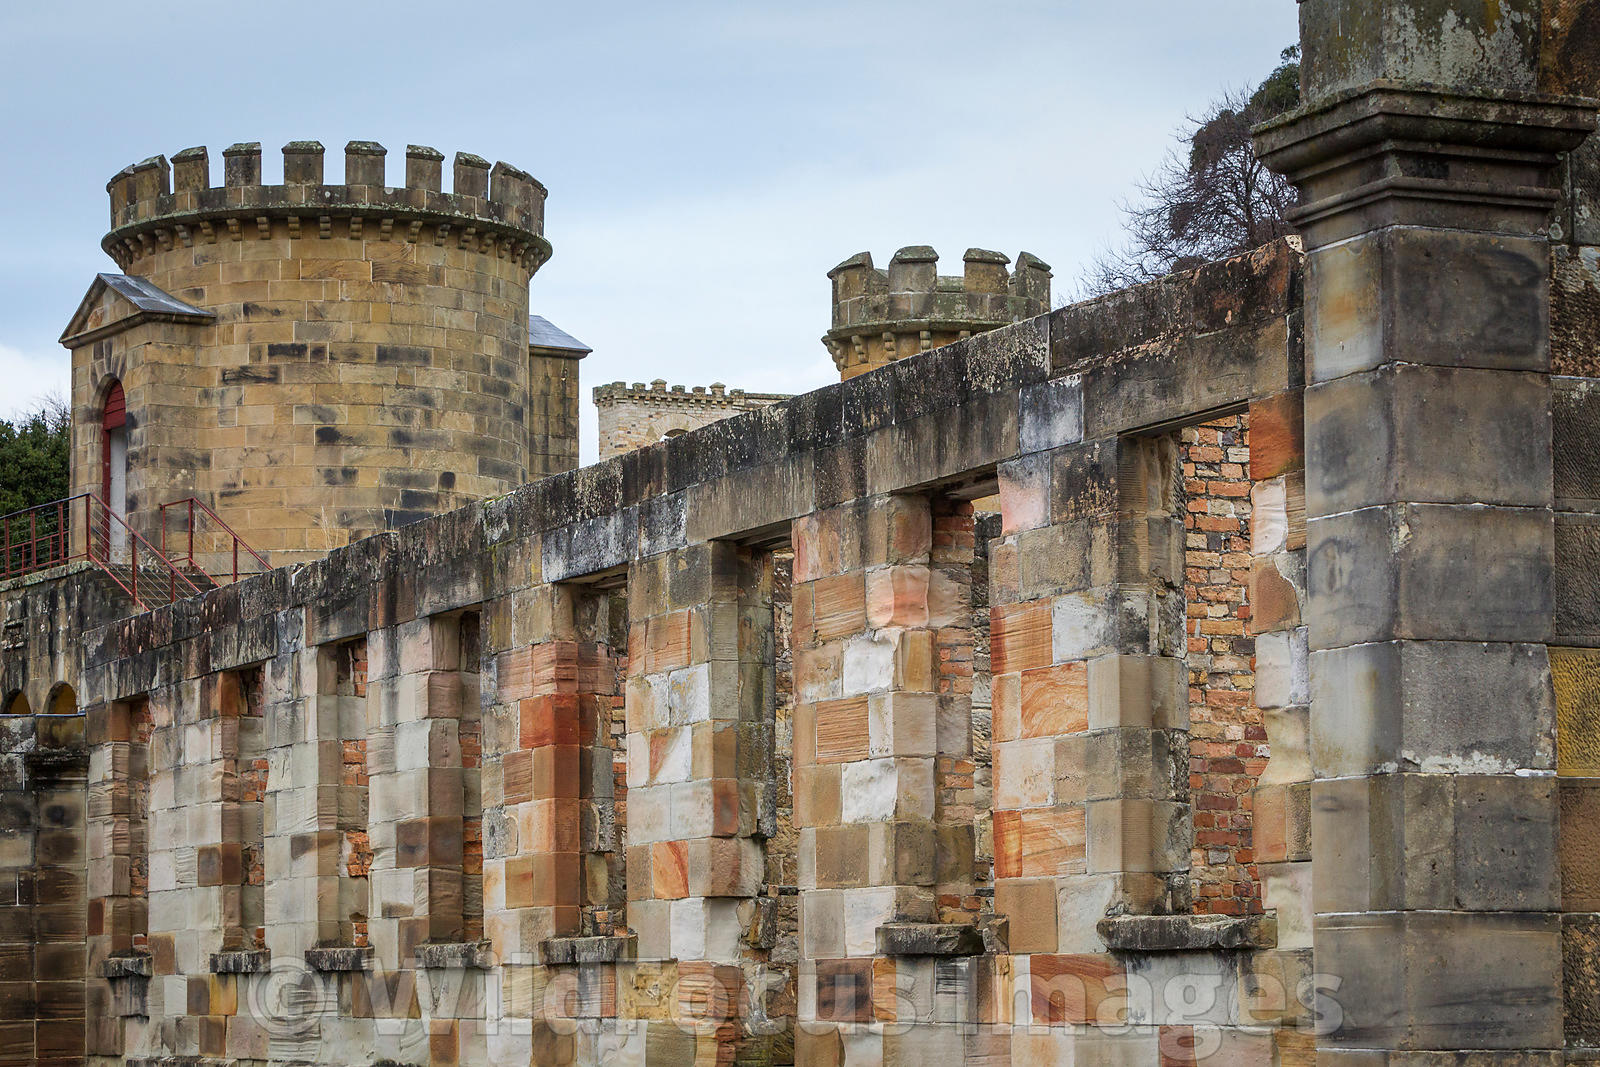 Guard tower and Law court ruins at Port Arthur Penal Settlement, Port Arthur, Tasmania, Australia; Landscape